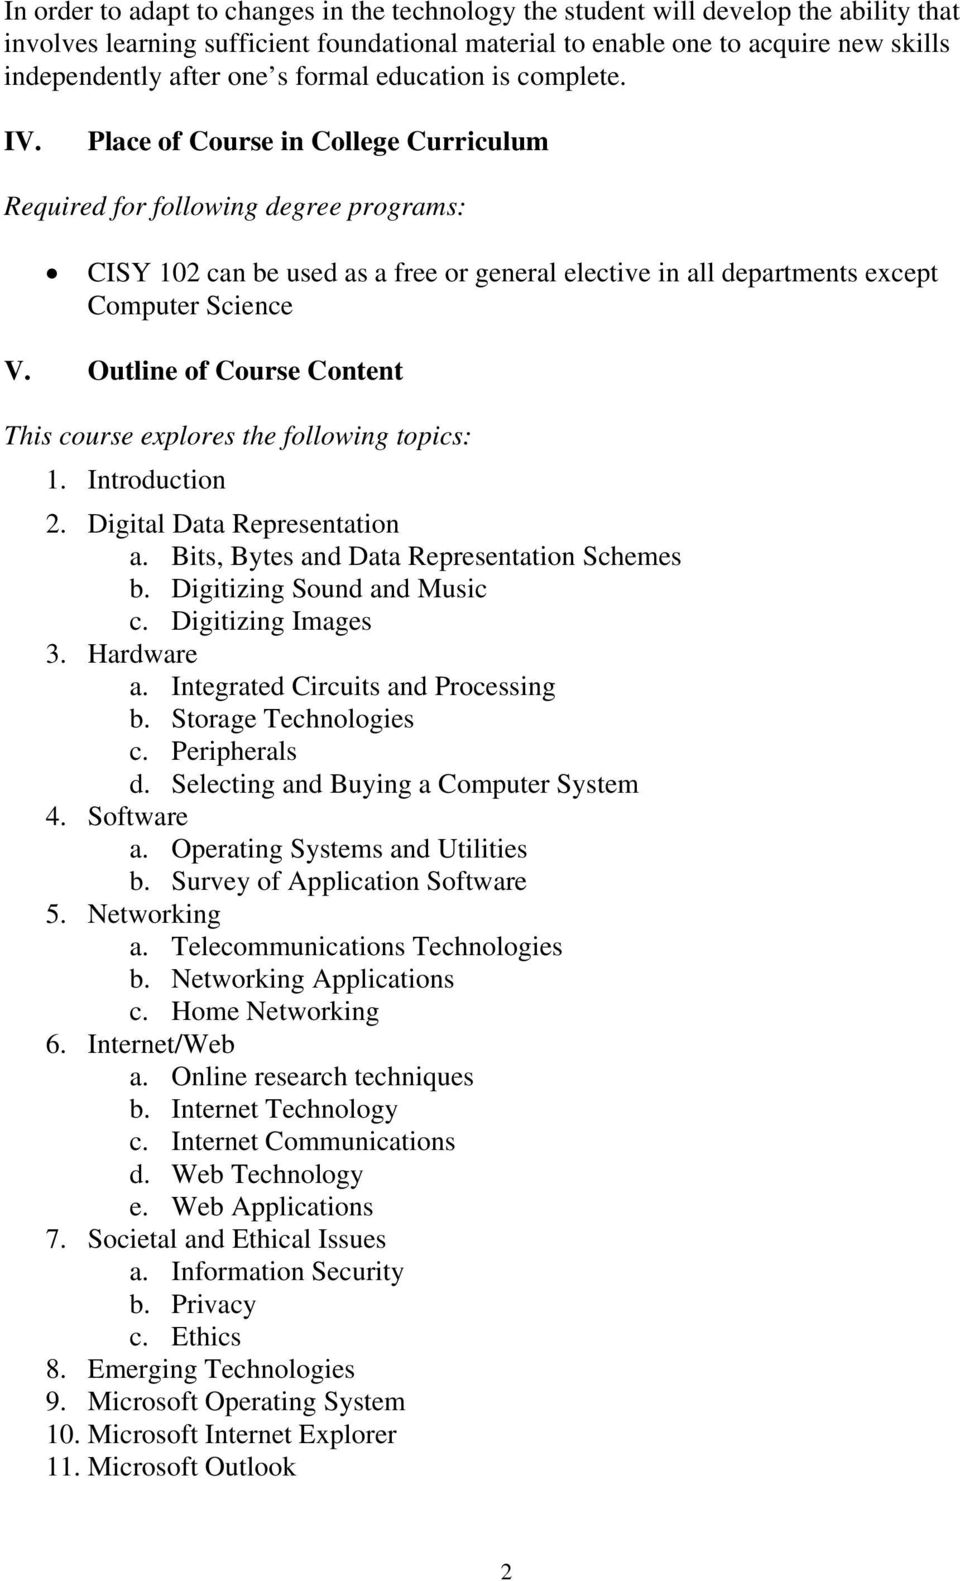 Place of Course in College Curriculum Required for following degree programs: CISY 102 can be used as a free or general elective in all departments except Computer Science V.